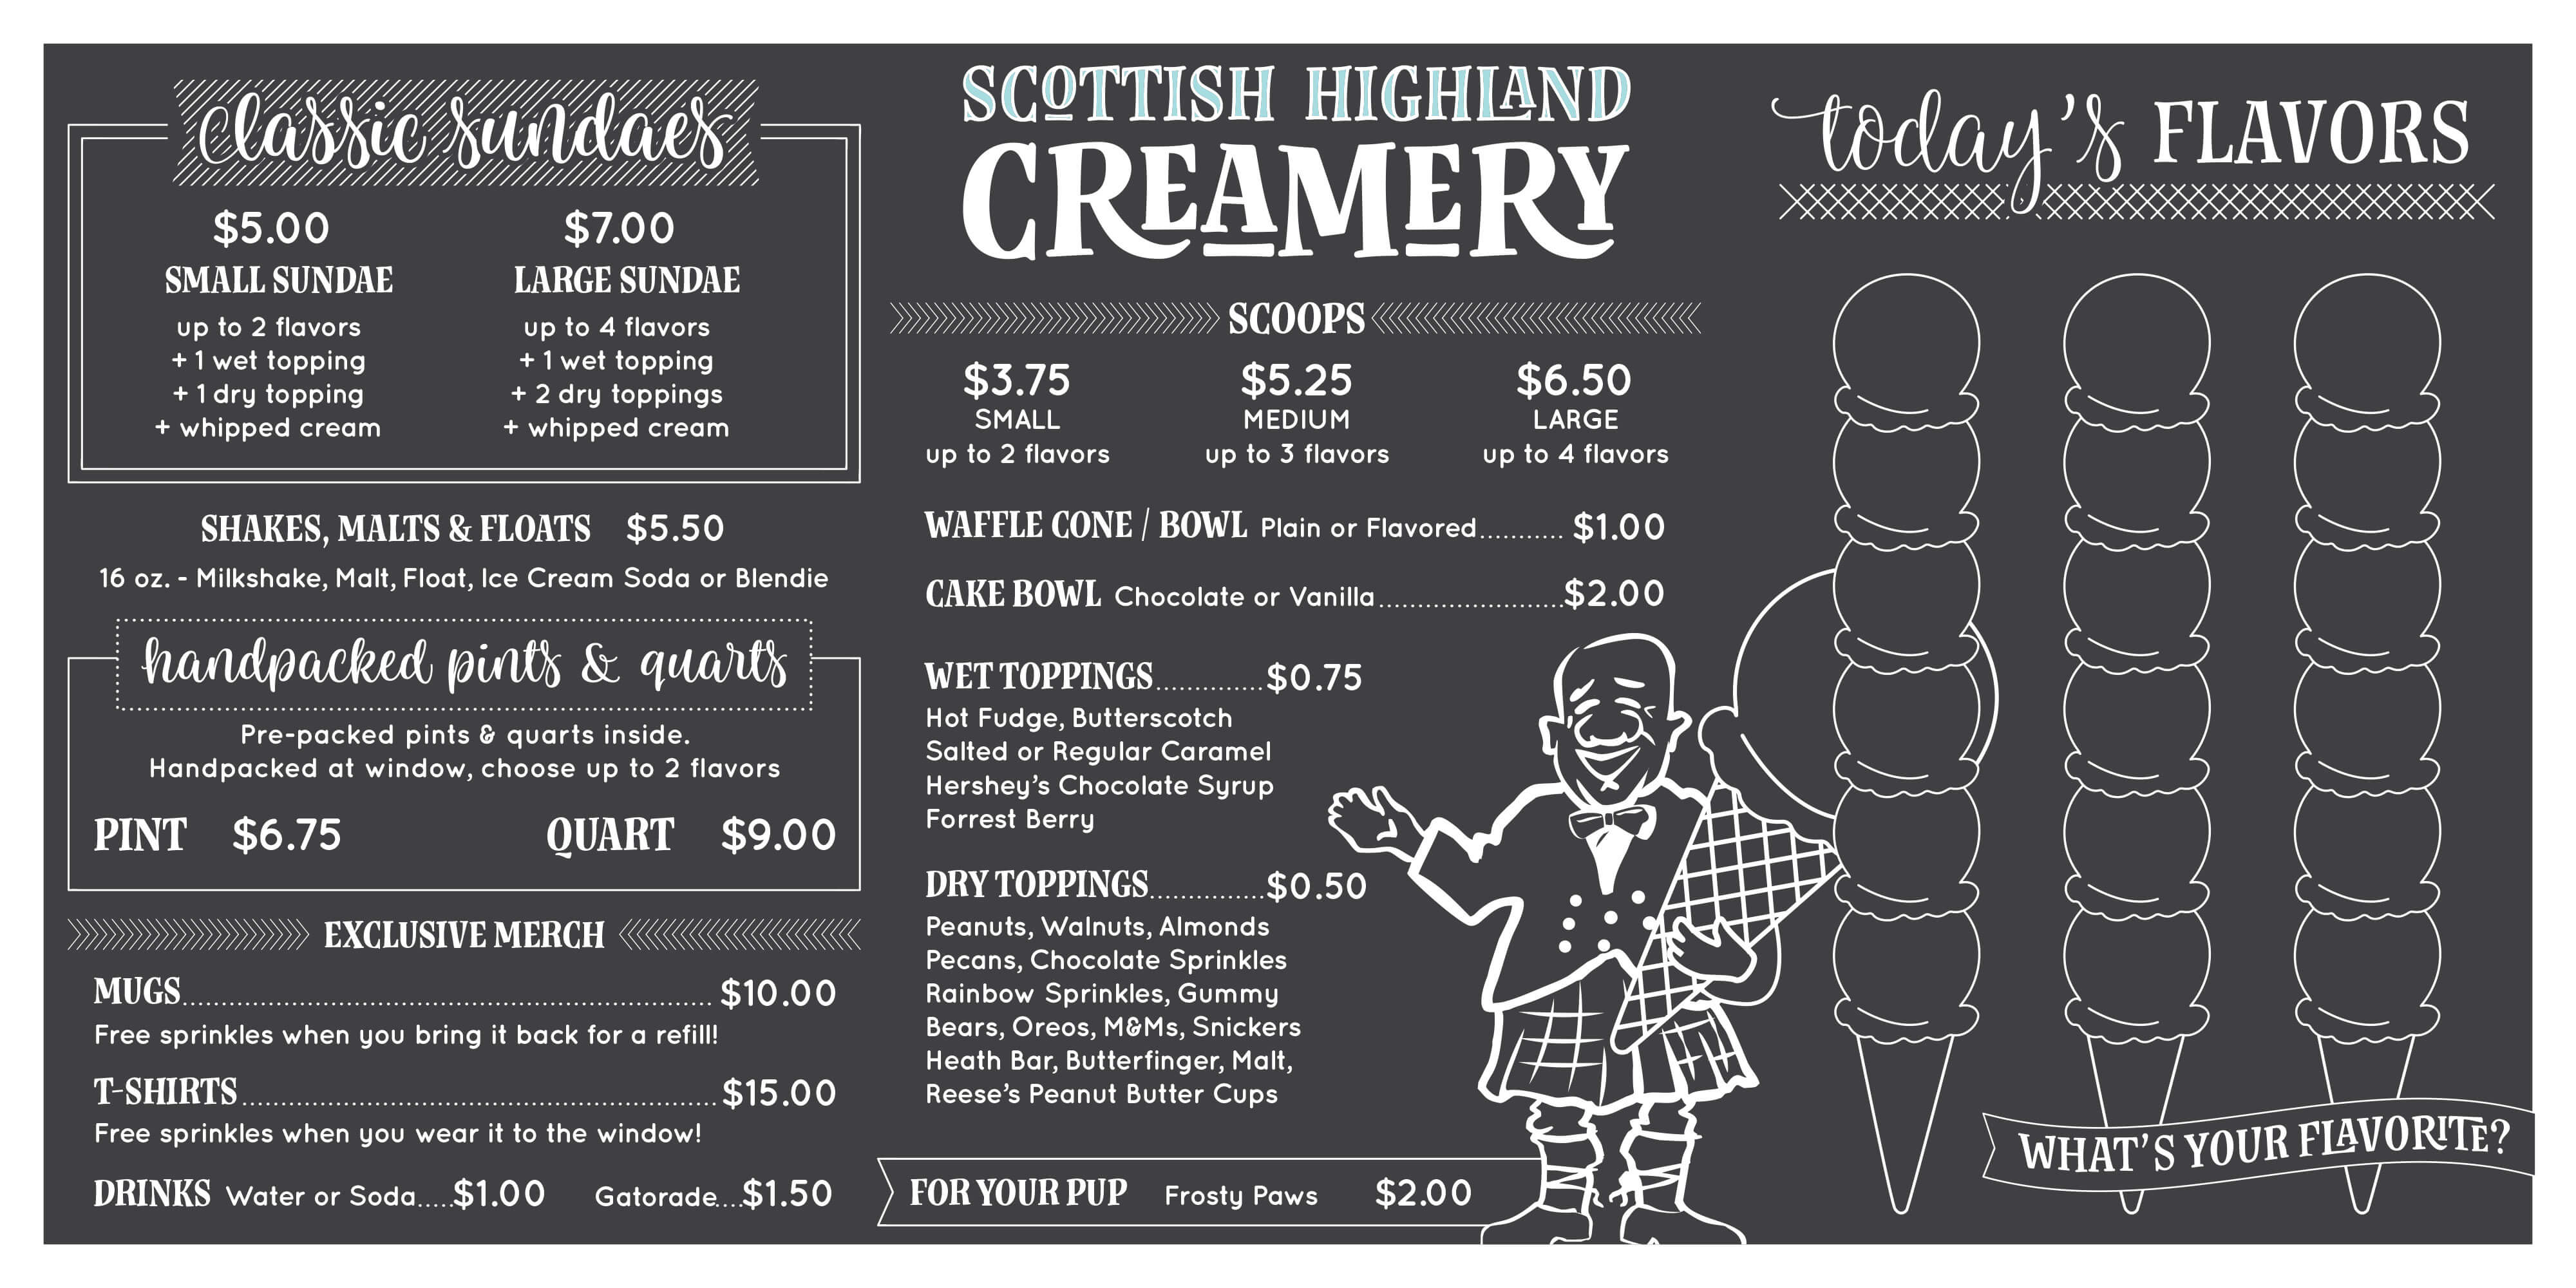 Our new menu board! Scottish Highland Creamery